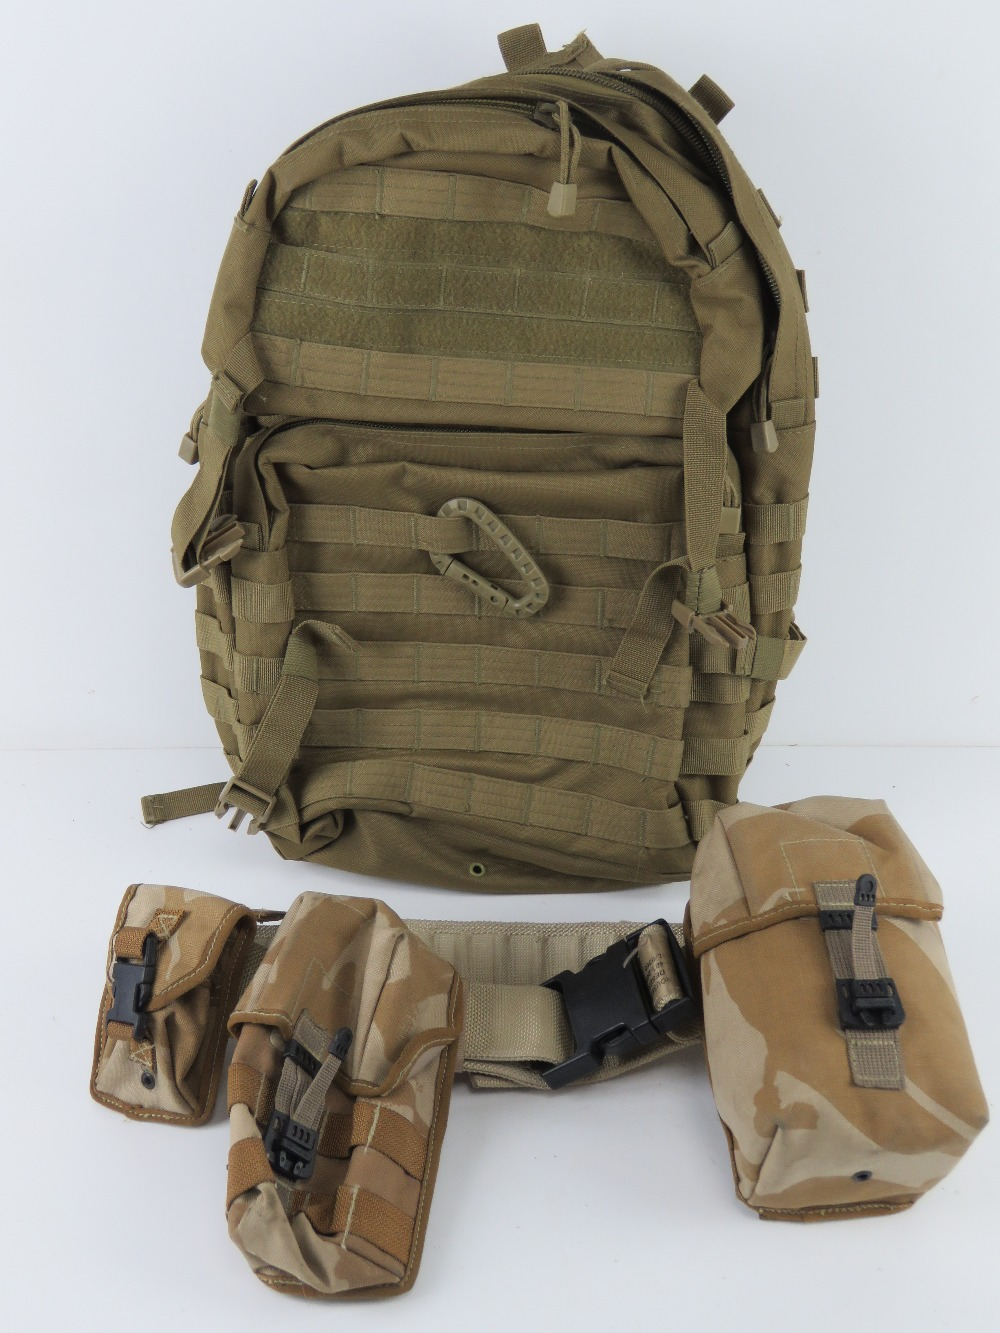 A British Military desert webbing belt with three pouches and water bottle,